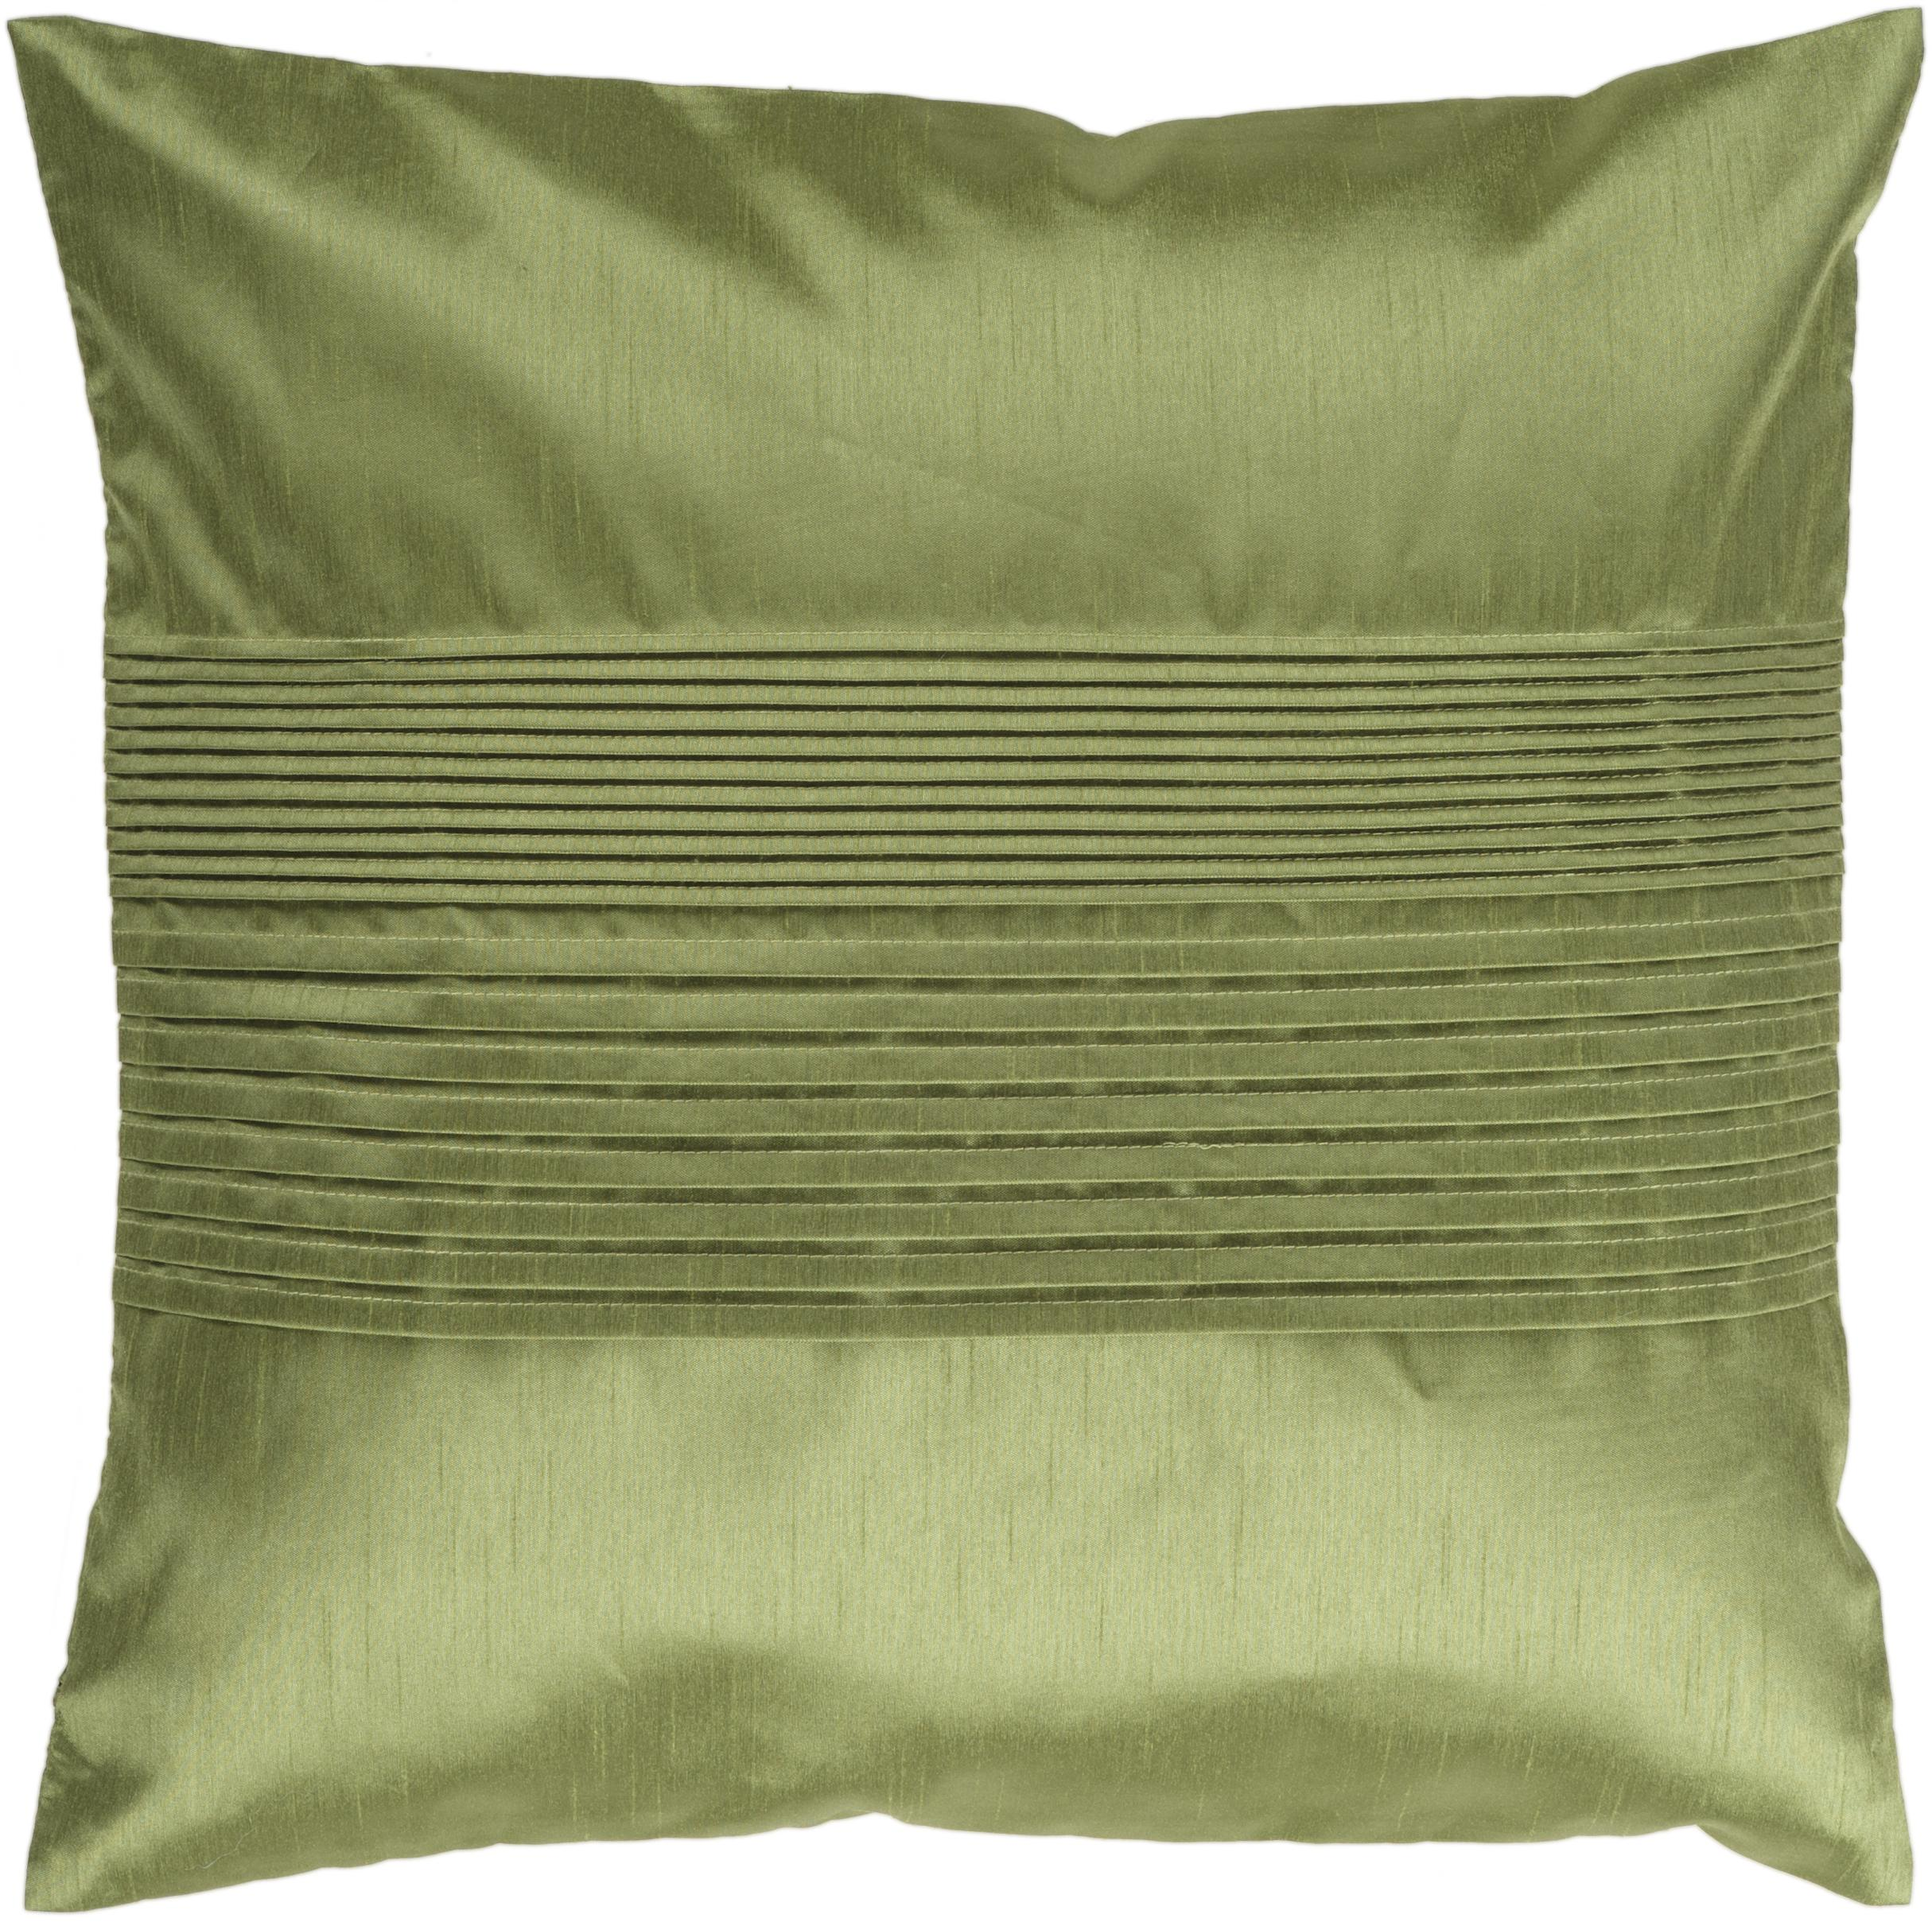 "Surya Pillows 22"" x 22"" Pillow - Item Number: HH013-2222P"